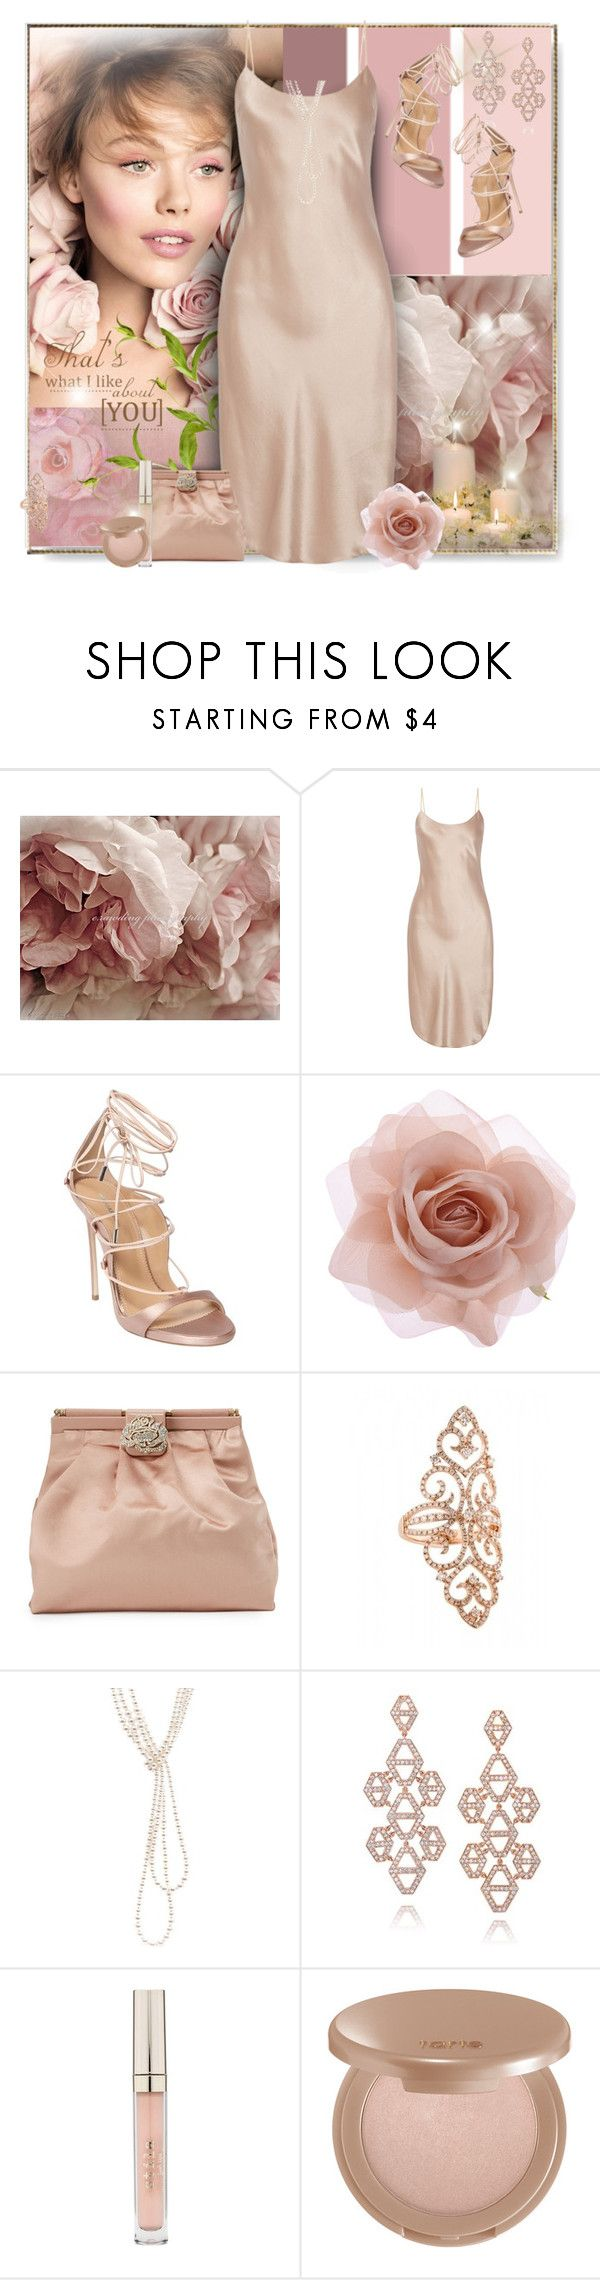 """""""Candle light dinner"""" by perla57 ❤ liked on Polyvore featuring Maiyet, Dsquared2, Accessorize, Valentino, Chanel, Walters Faith, Stila and tarte"""